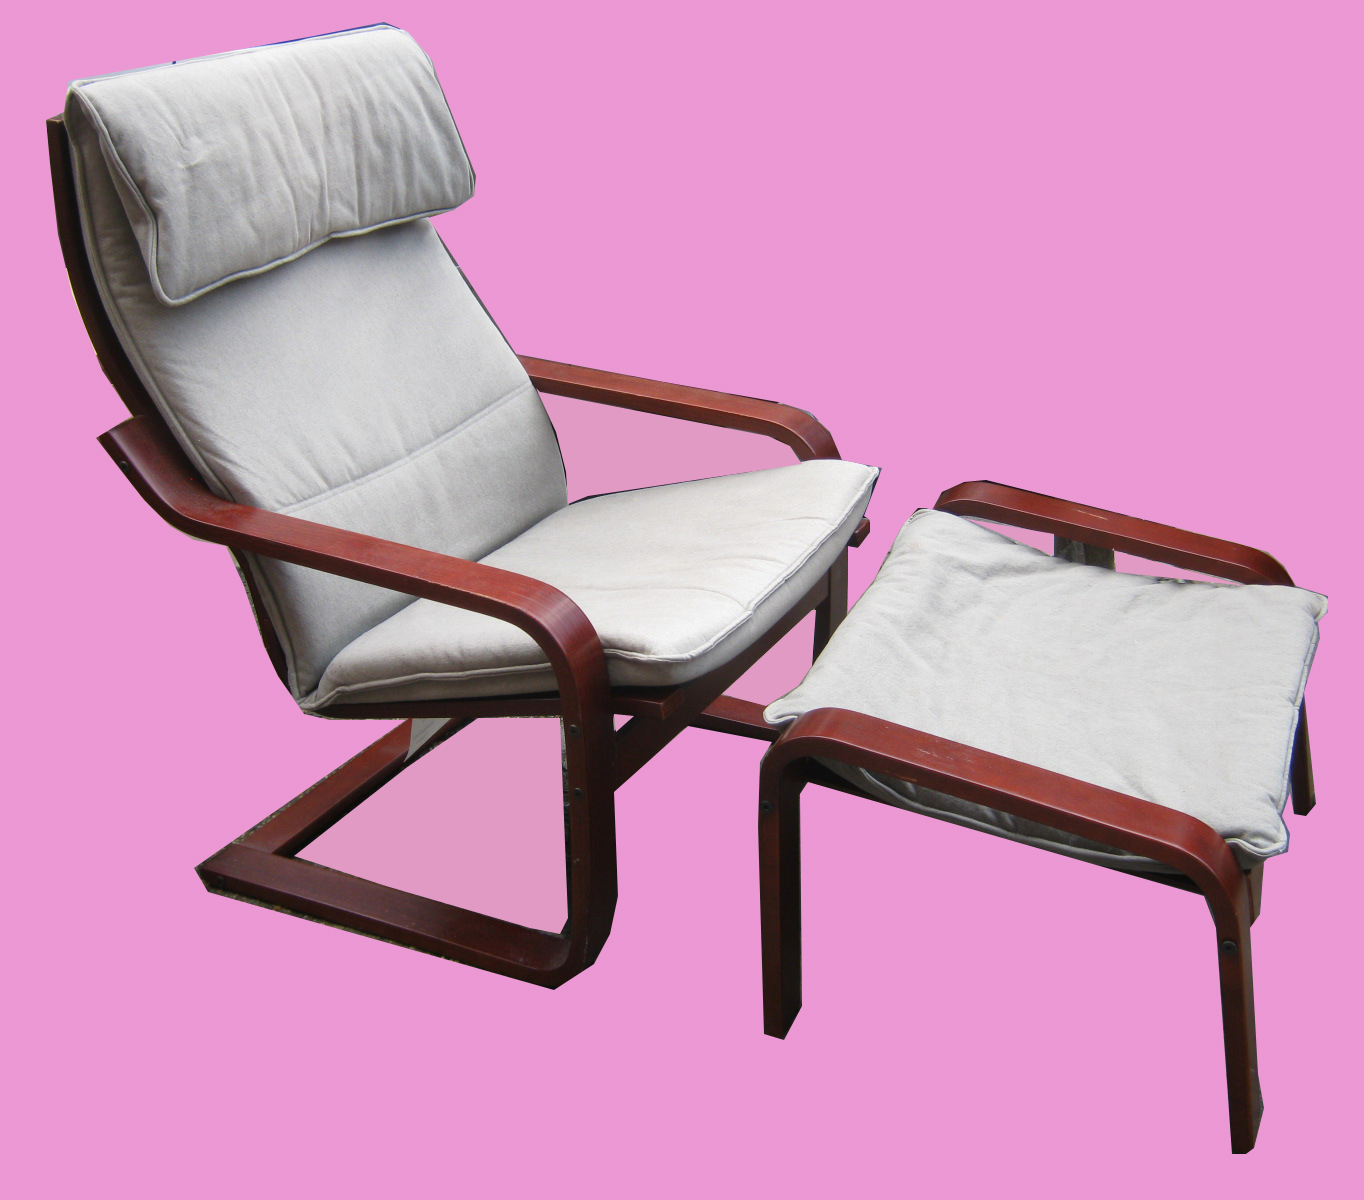 ikea recliner chairs sale big beach chair poang and footstool  nazarm